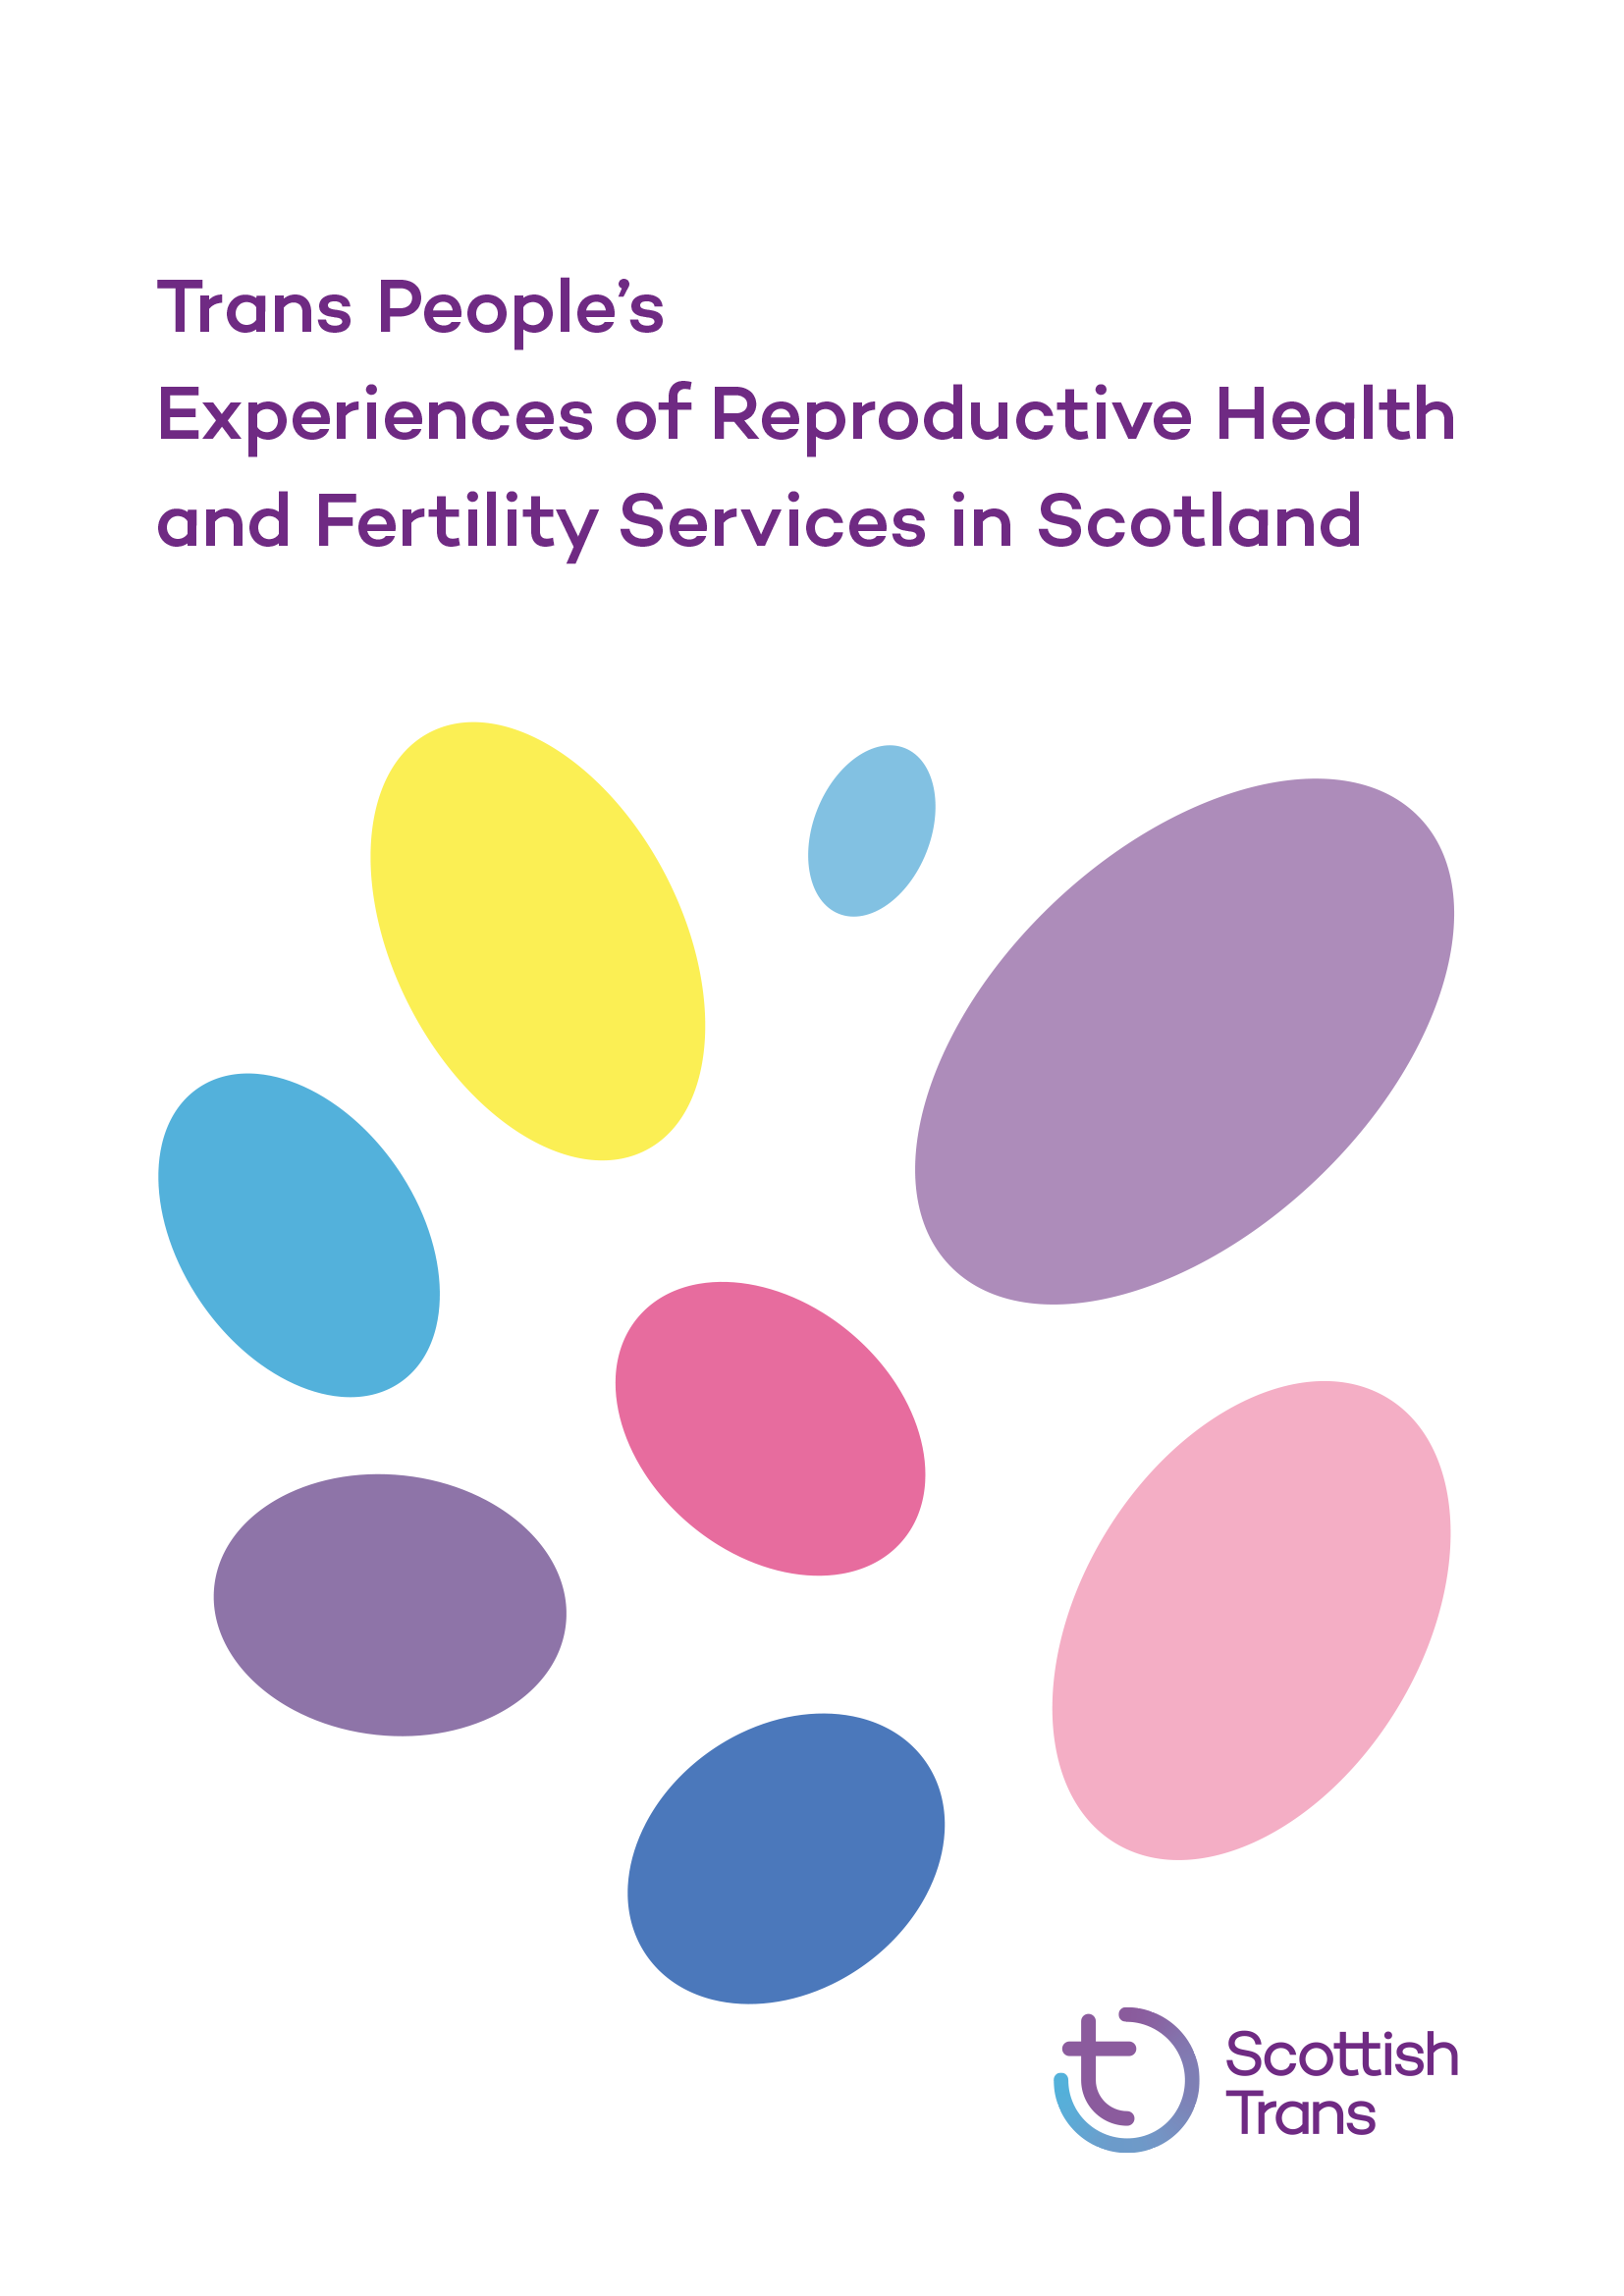 Trans People's Experiences of Reproductive Health and Fertility Services in Scotland